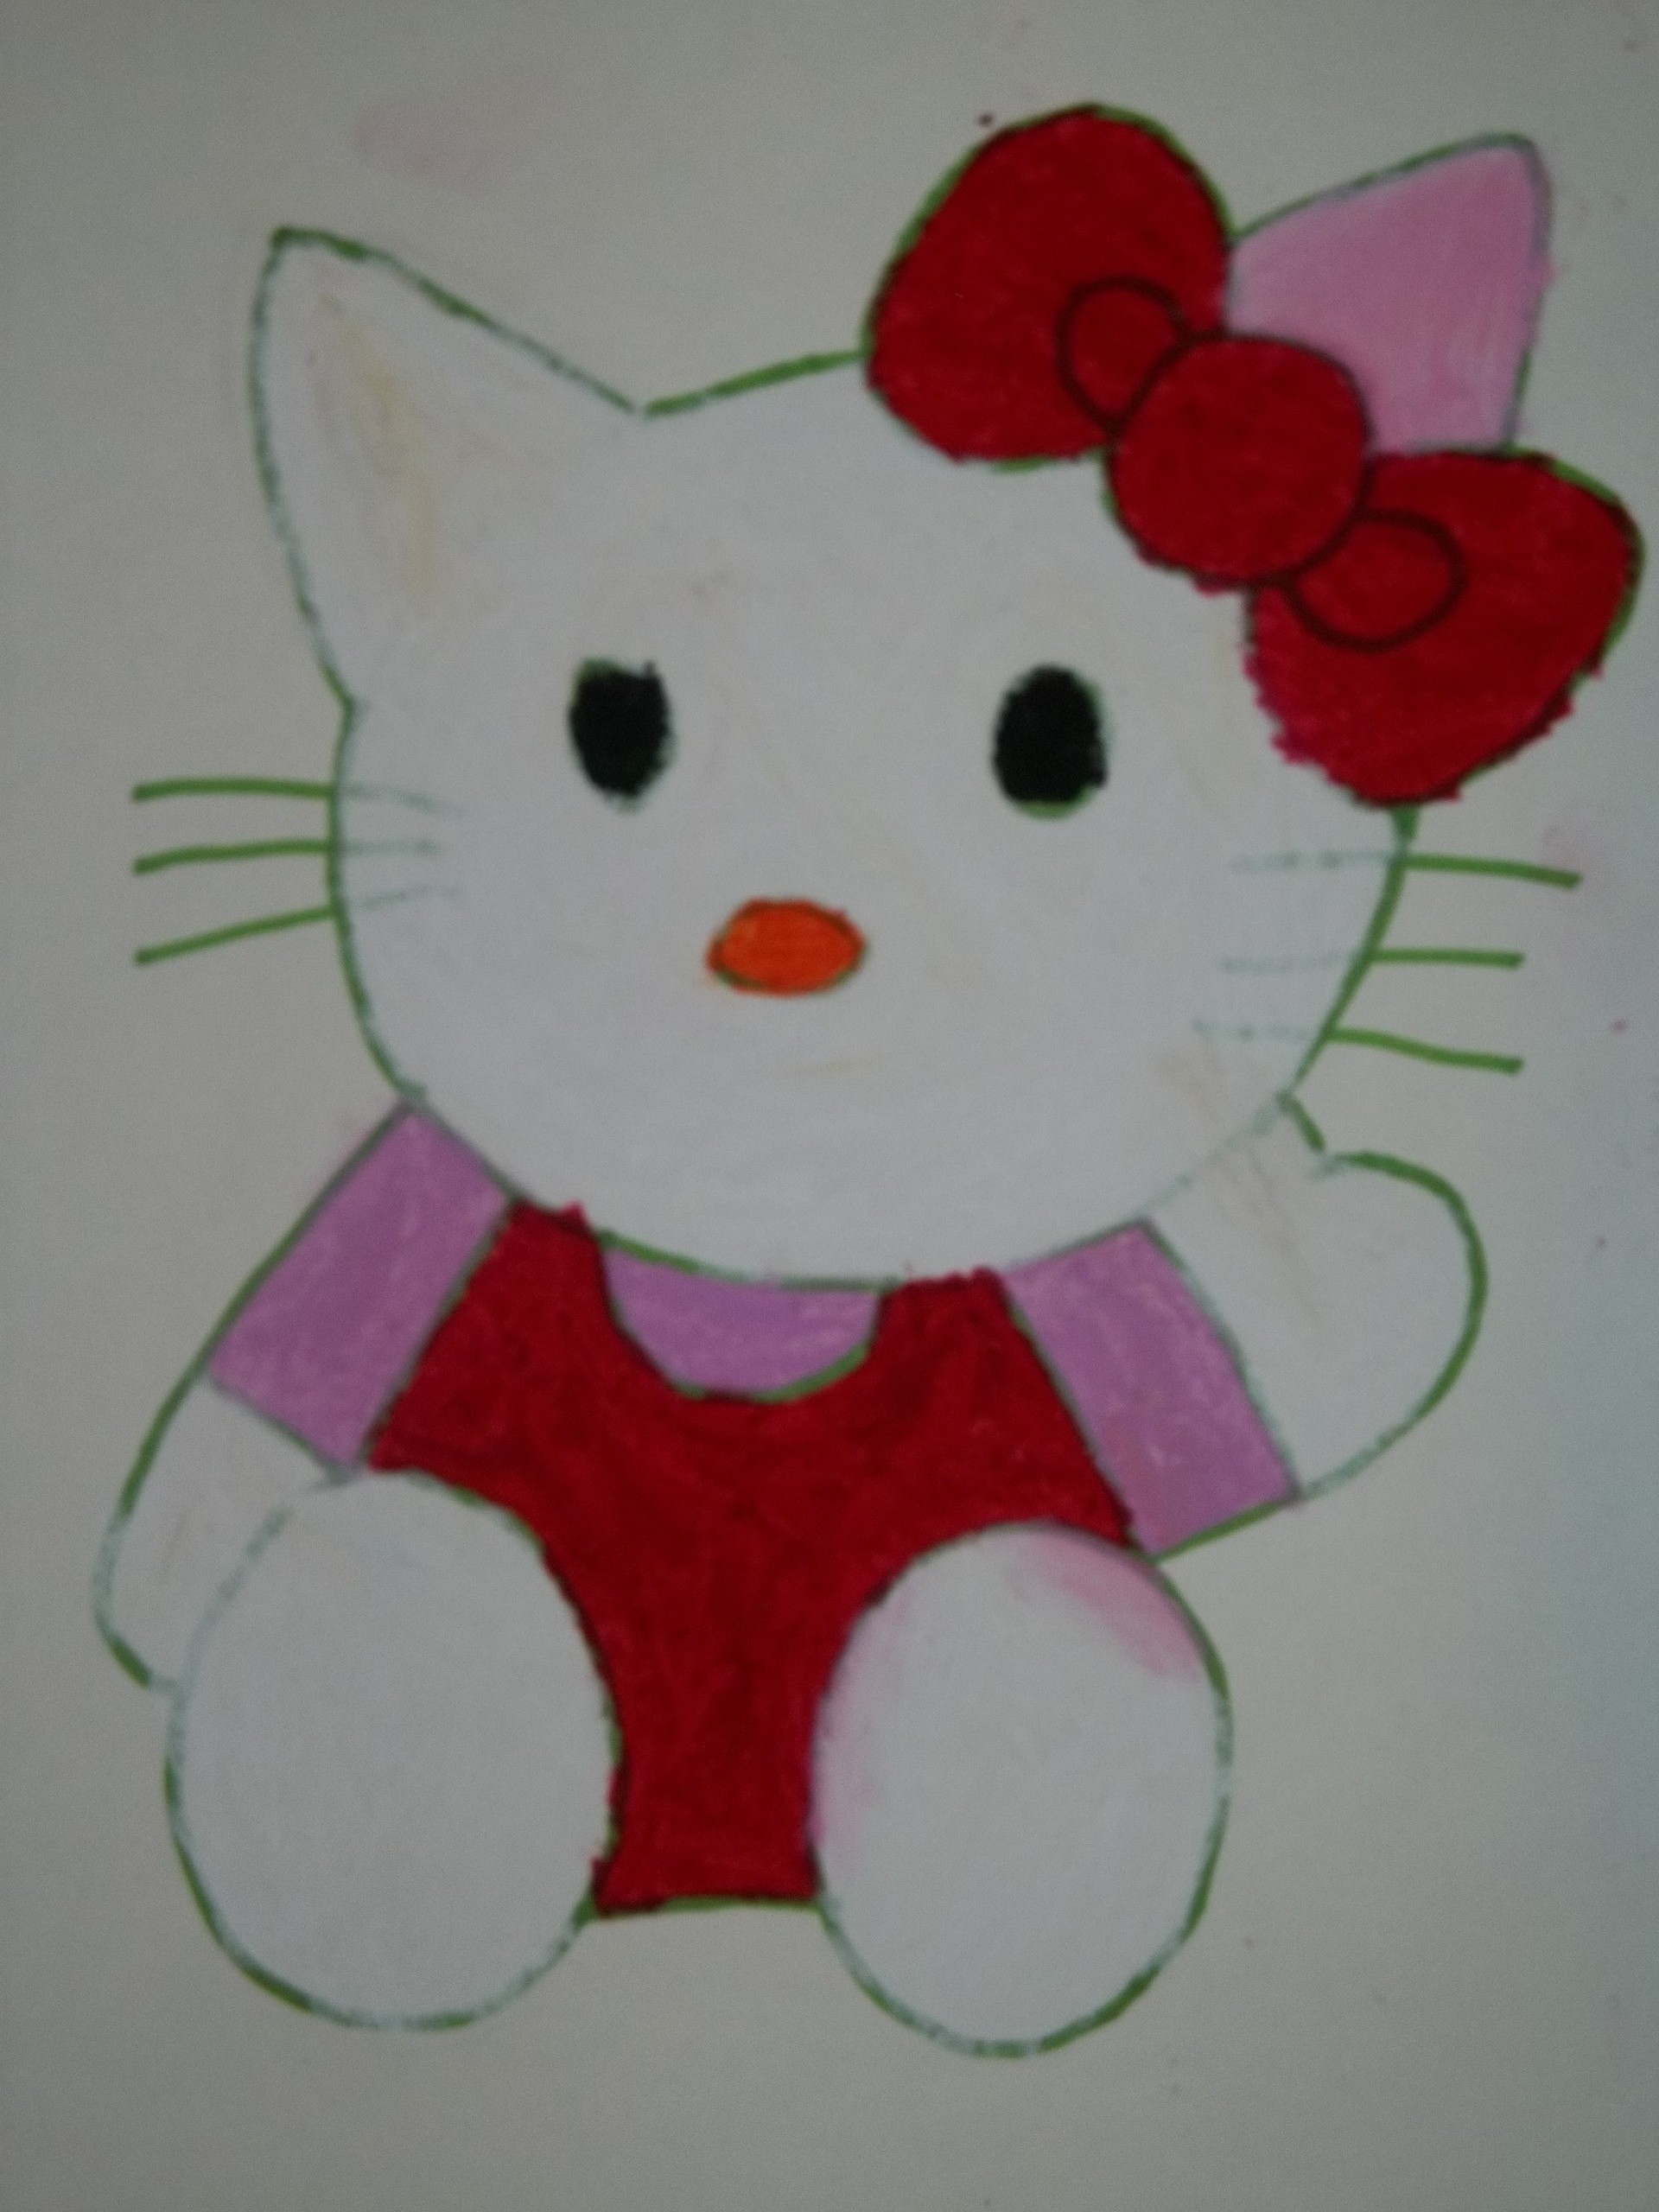 Res: 1920x2560, Sanrio images Hello Kitty HD wallpaper and background photos